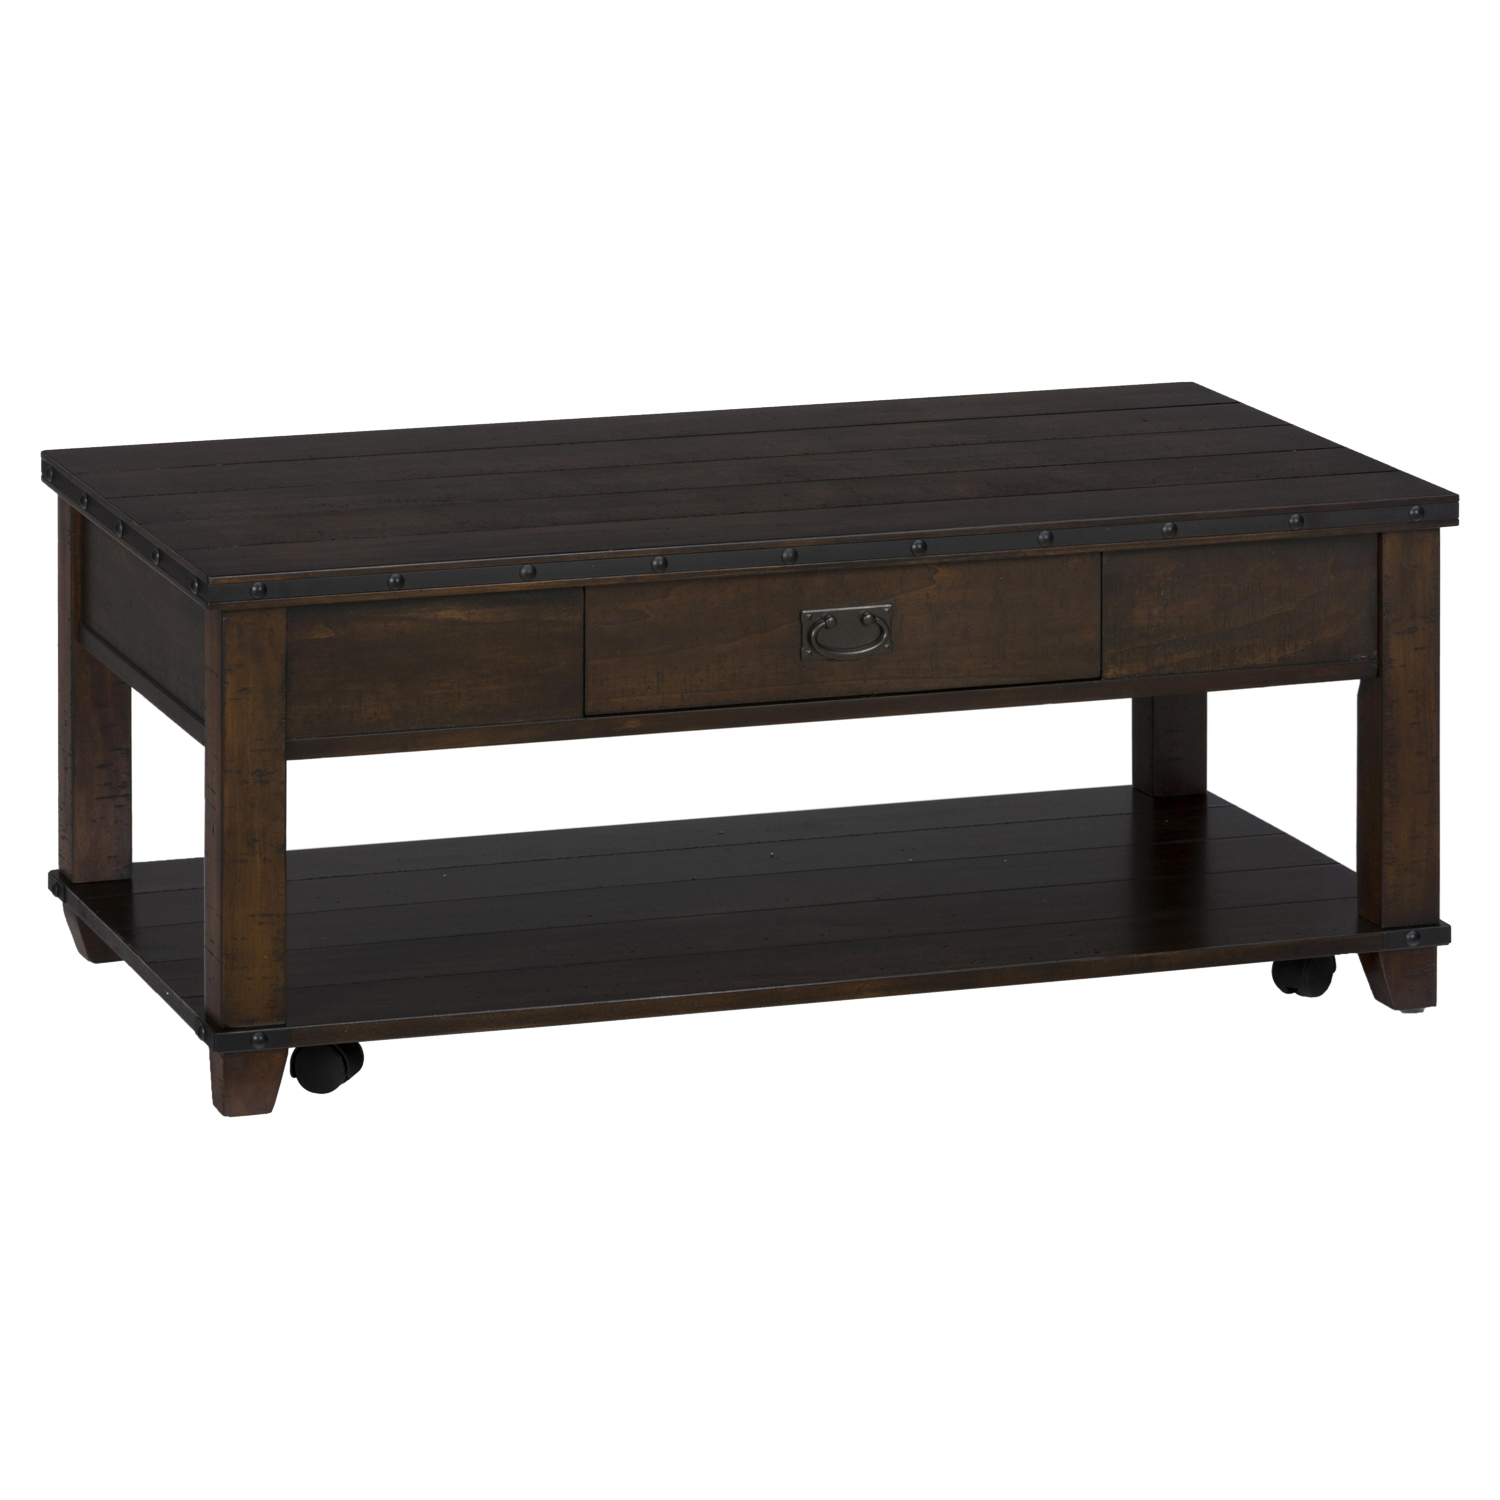 Cassidy Cocktail Table - Plank Top, Dark Brown